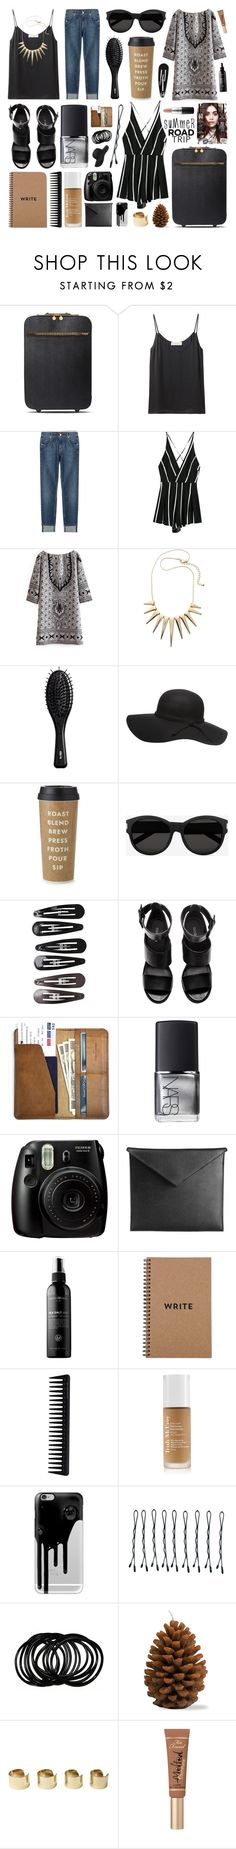 """""""I'm walking on sunshine"""" by the-key-to-my-heart ❤ liked on Polyvore featuring STELLA McCARTNEY, Delfina Delettrez, 7 For All Mankind, H&M, Dorothy Perkins, Kate Spade, Yves Saint Laurent, Clips, CO and NARS Cosmetics"""